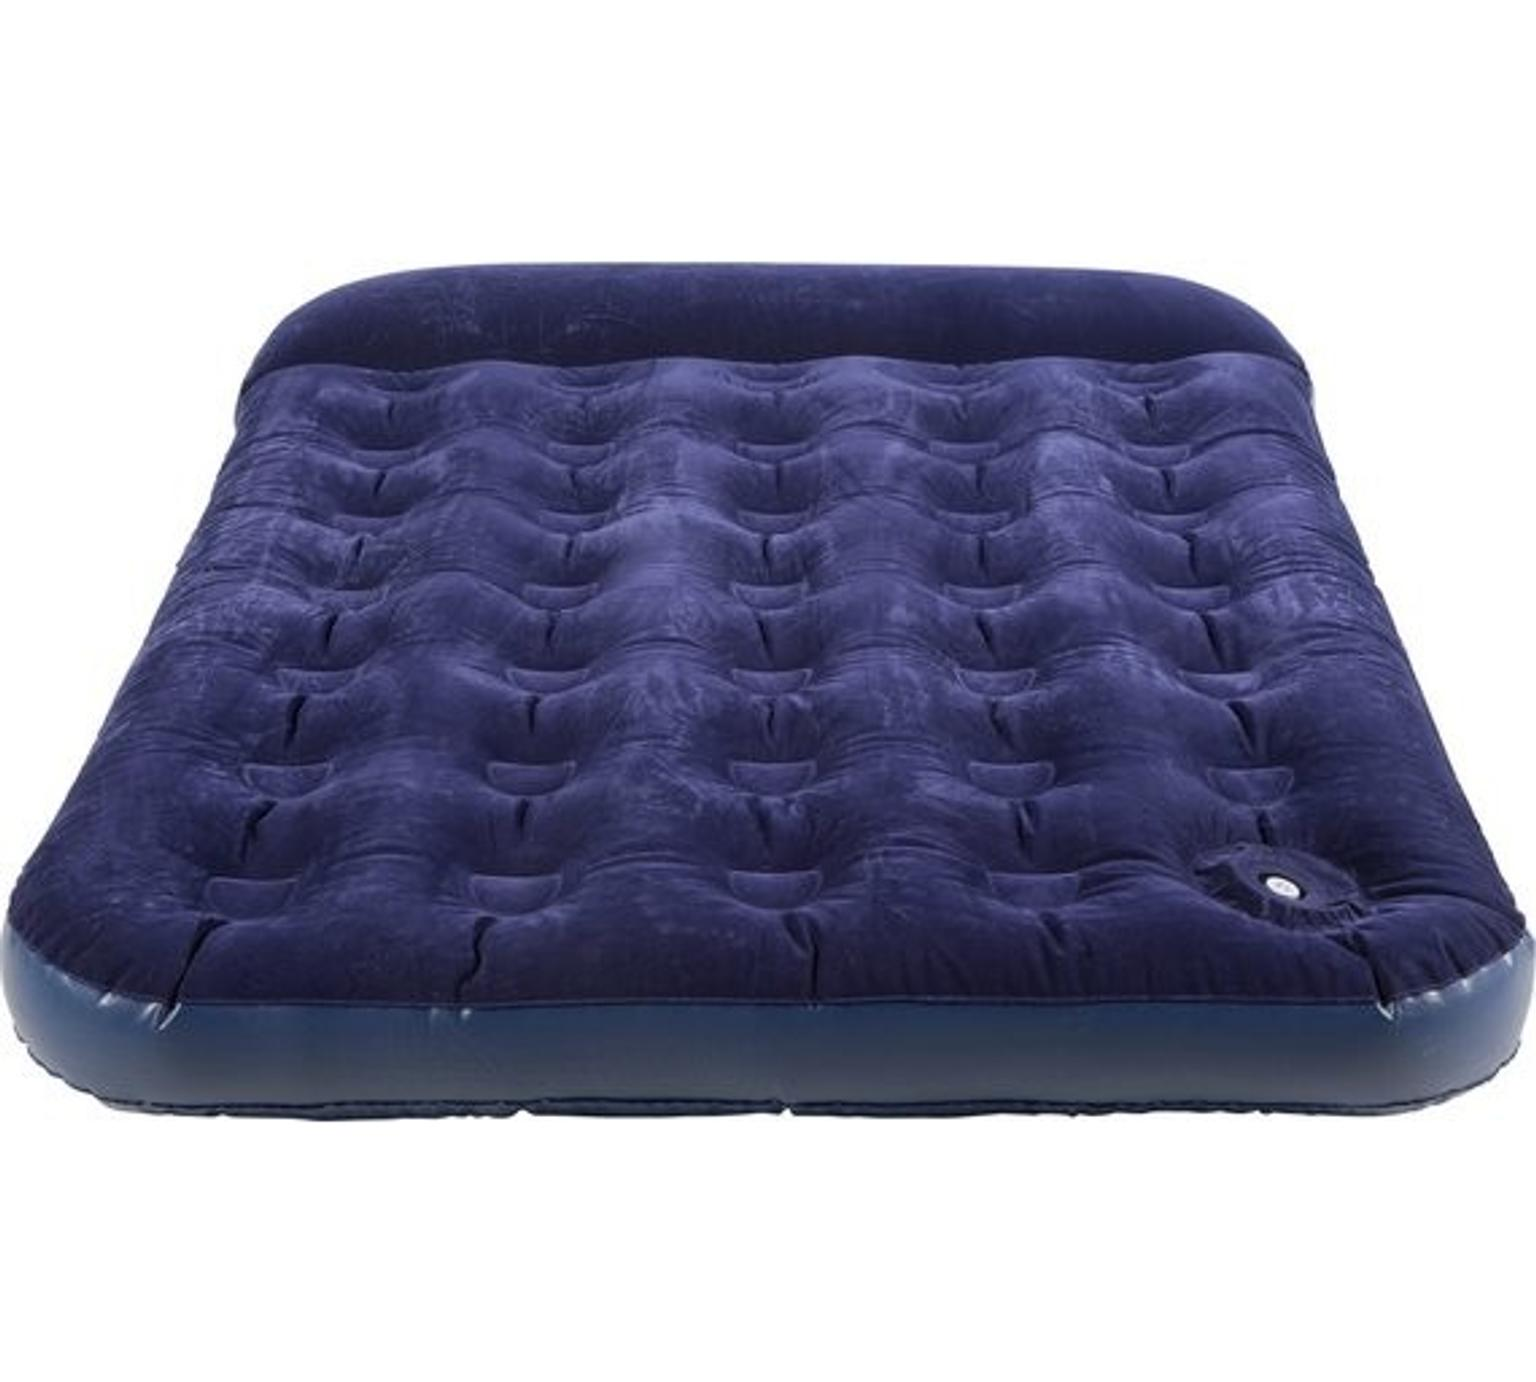 Inflatable Beds Argos: Argos Air Bed With Built In Pump